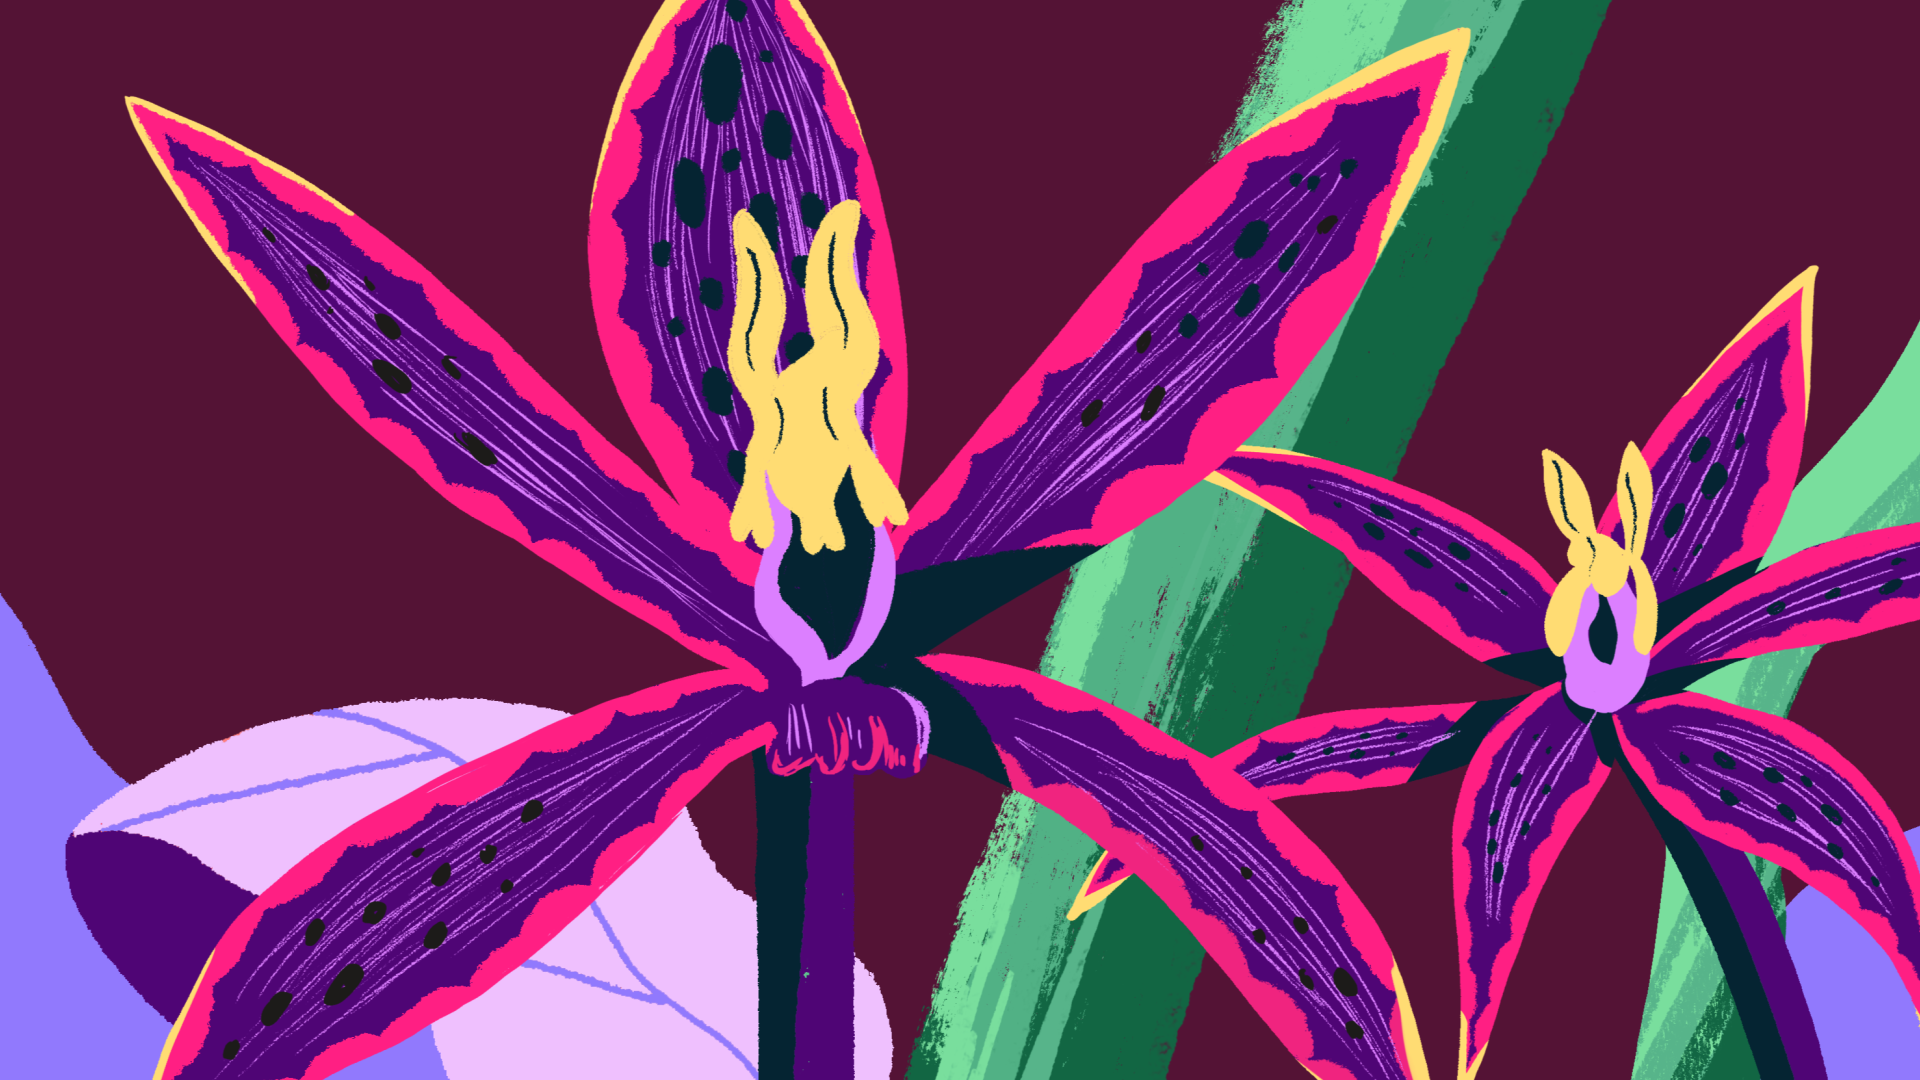 TED_orchid_edit_02377.png